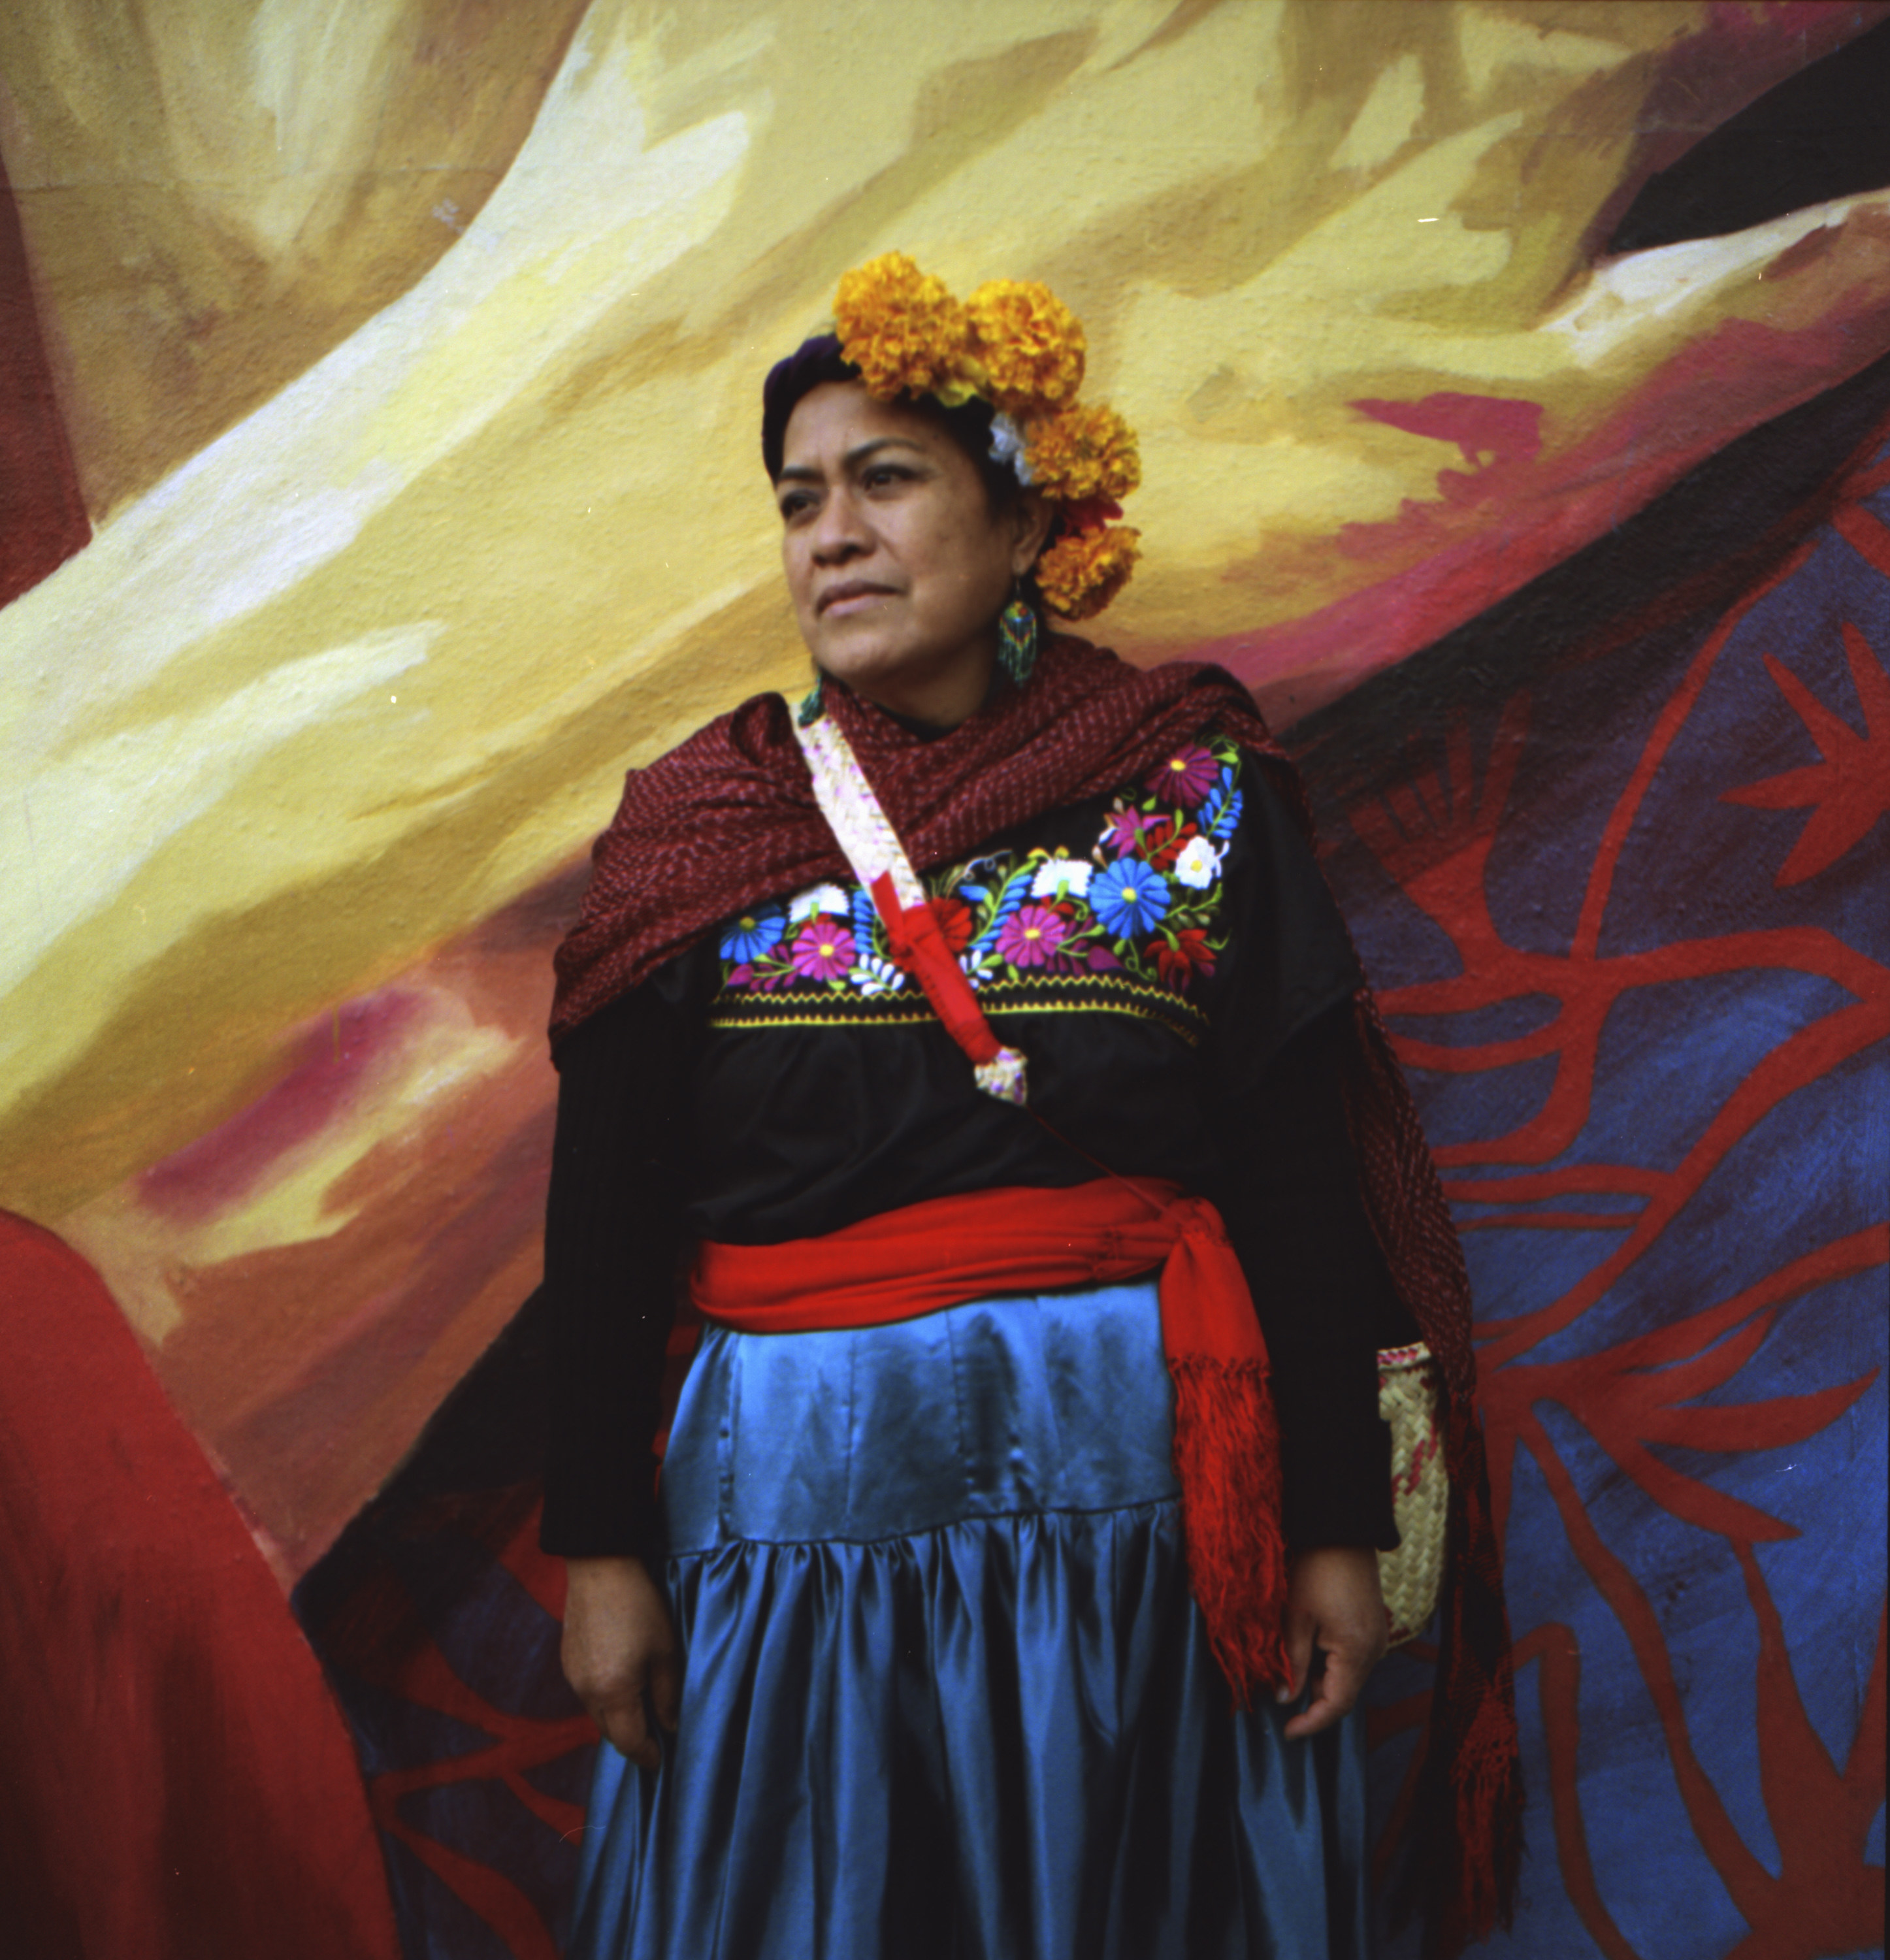 A woman in bright, traditional clothing in front of a mural